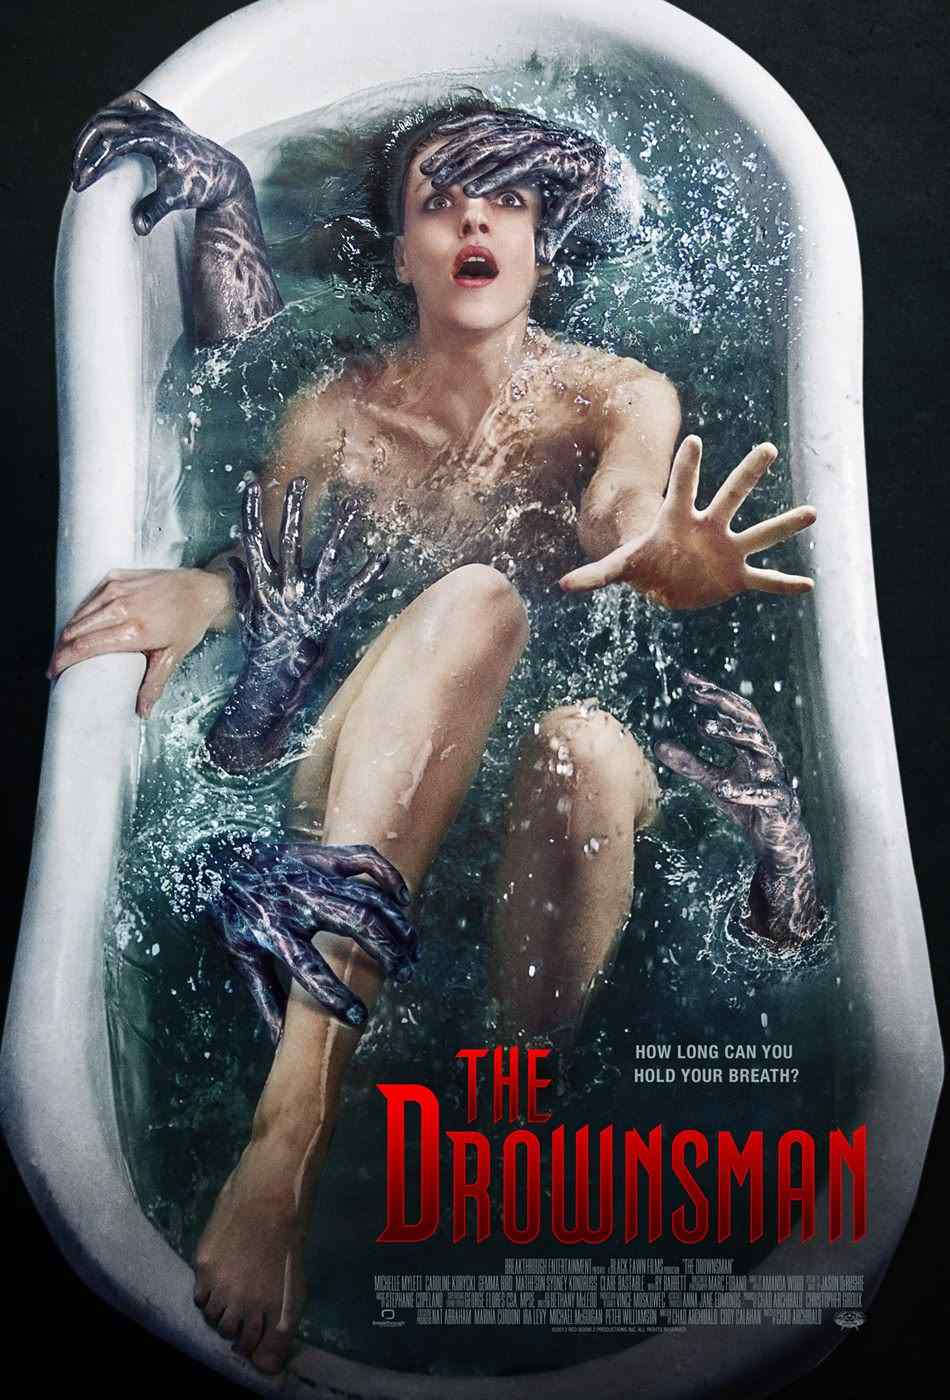 The Drownsman film poster.